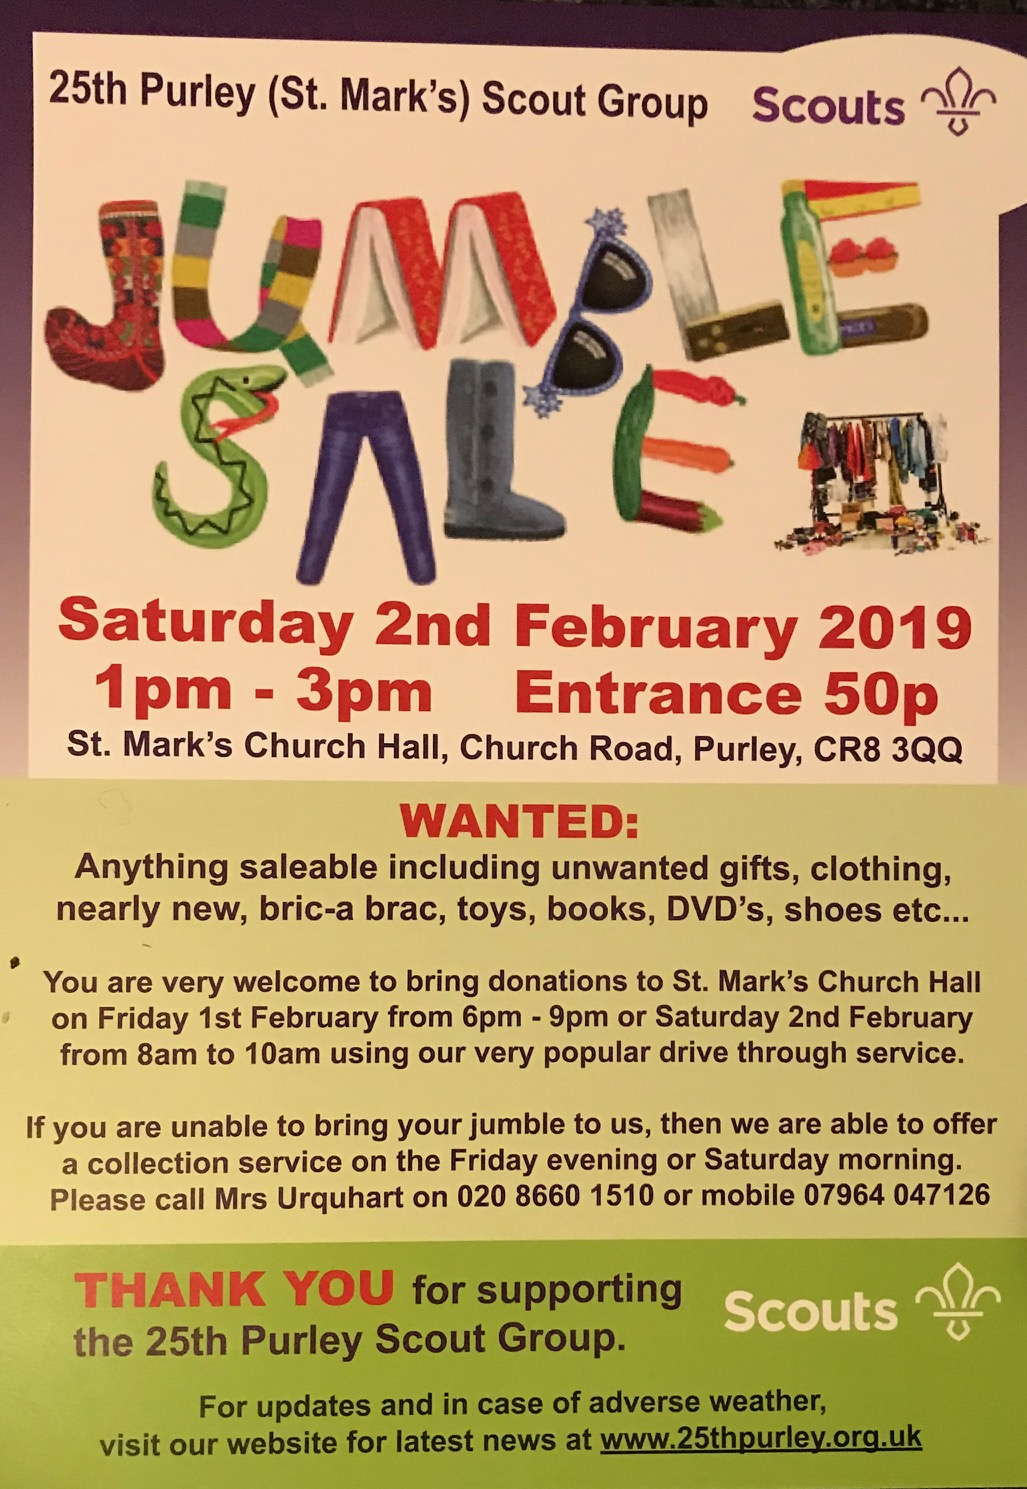 25th Purley Scout Group Jumble Sale